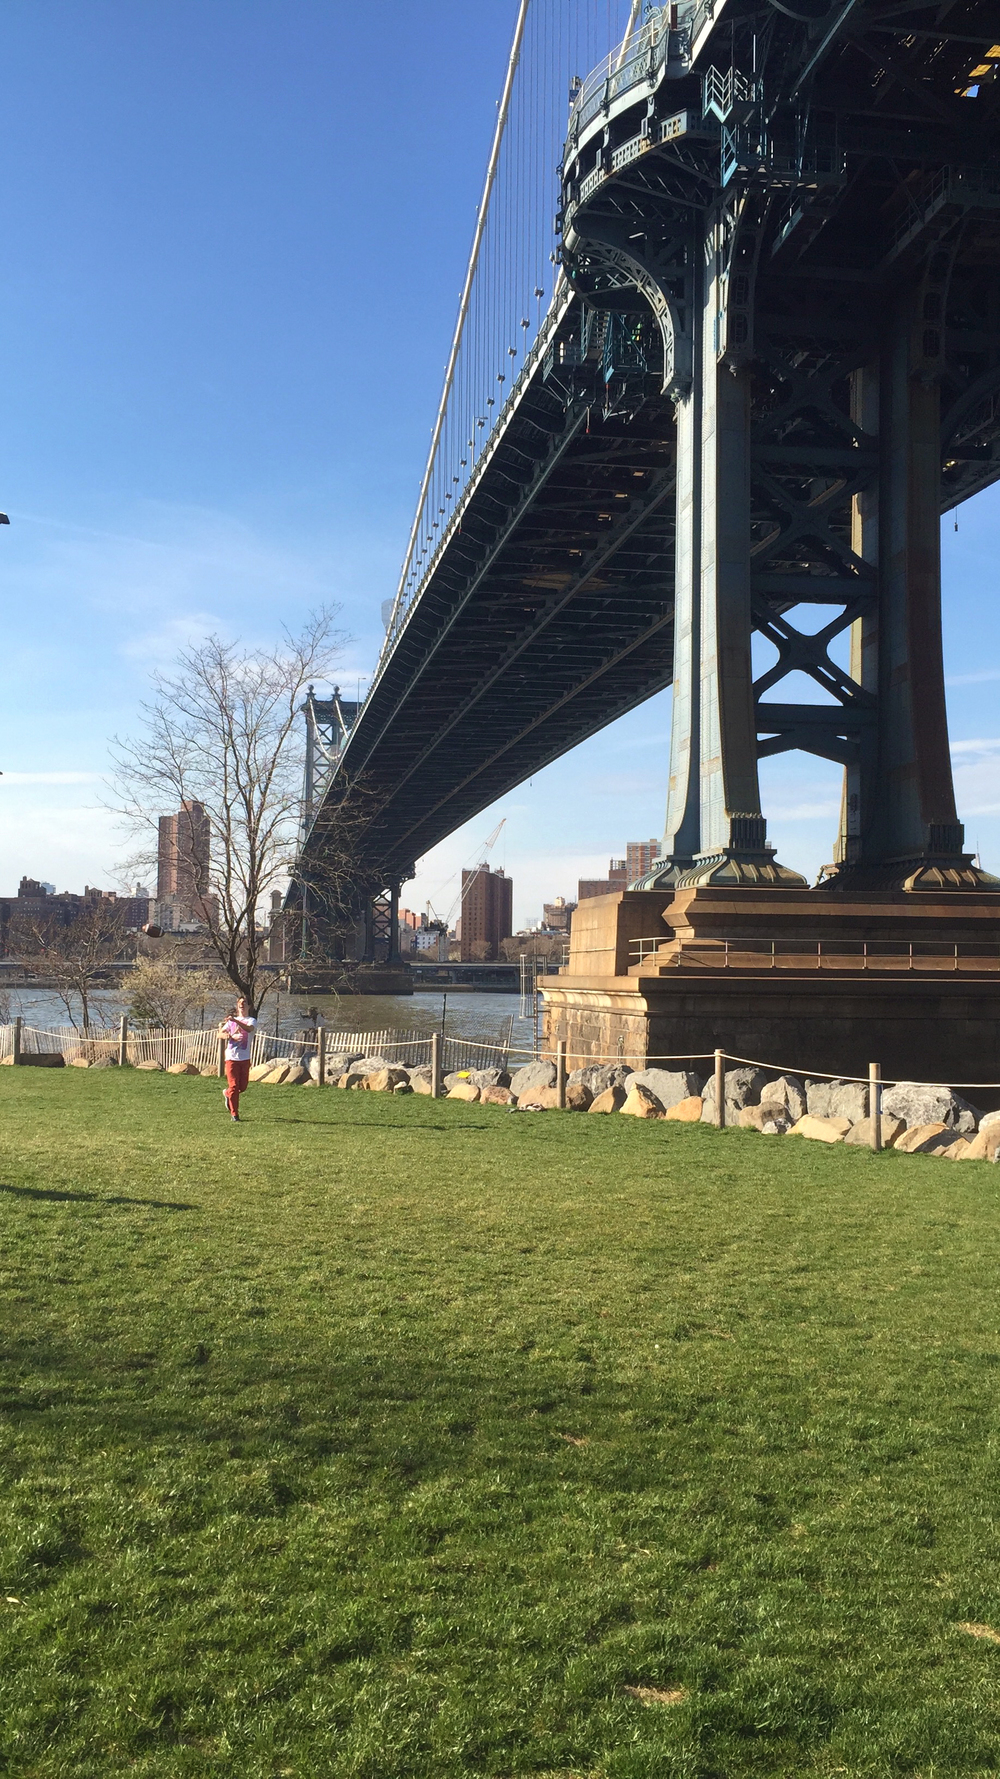 Looking across the span of the Manhattan Bridge from inside Brooklyn Bridge Park in DUMBO - April 10, 2016